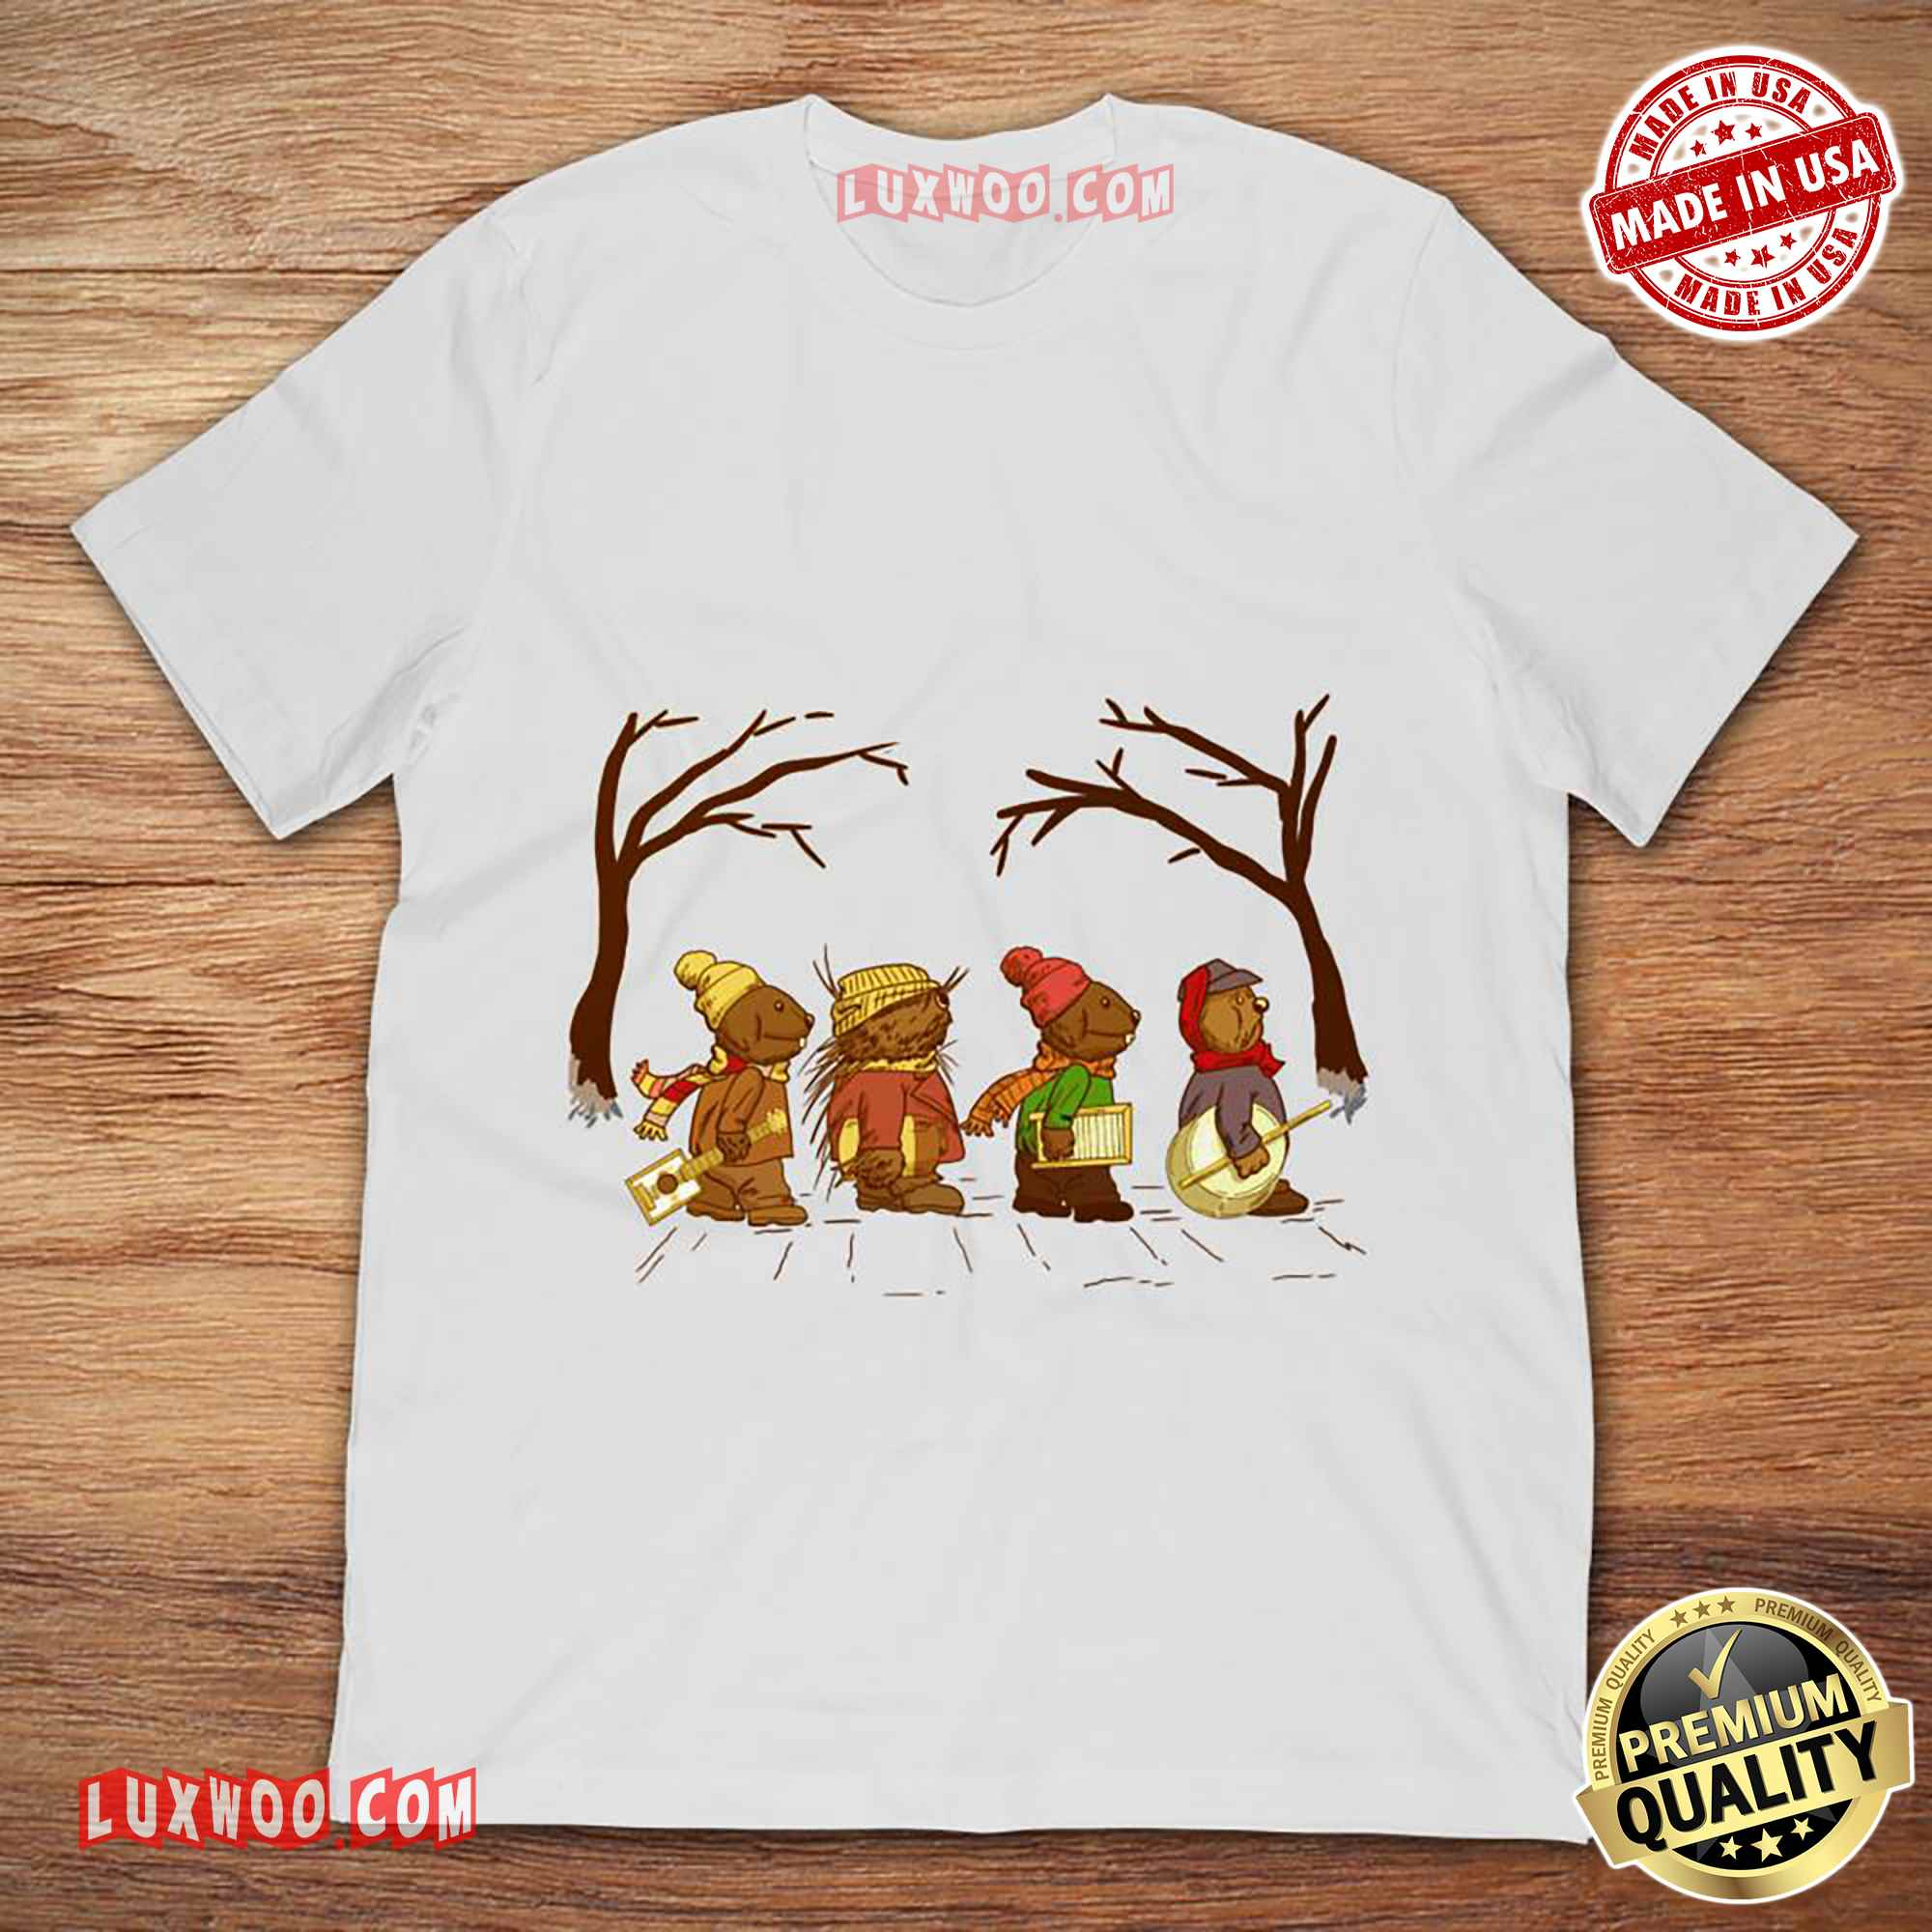 Jug Band Road Emmet Otters Jug-band Christmas Tee Shirt